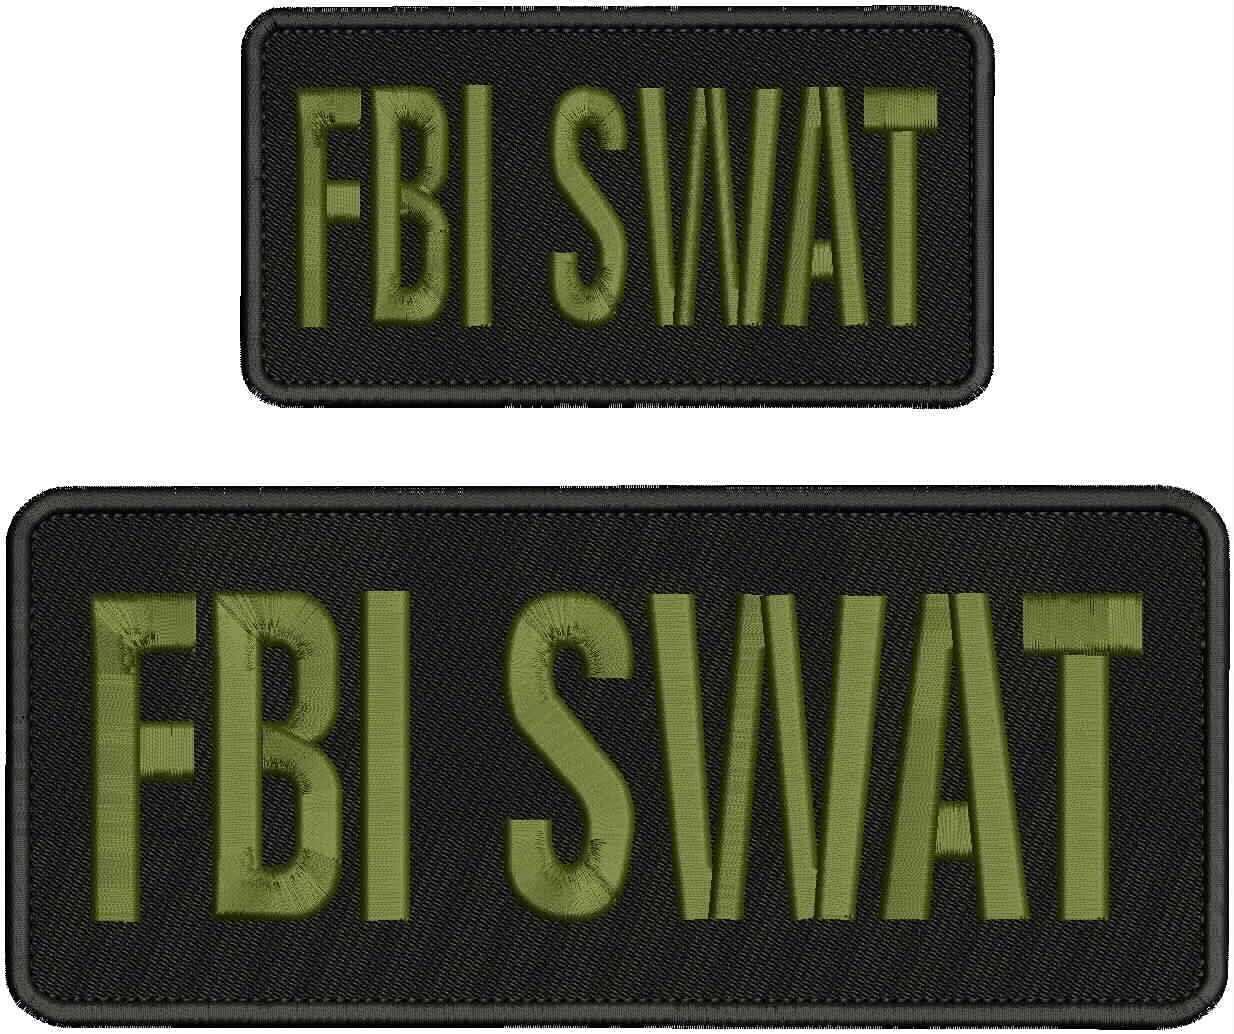 Embroidered Patch Cash special price - Patches for Sales results No. 1 SWAT Man Women FBI